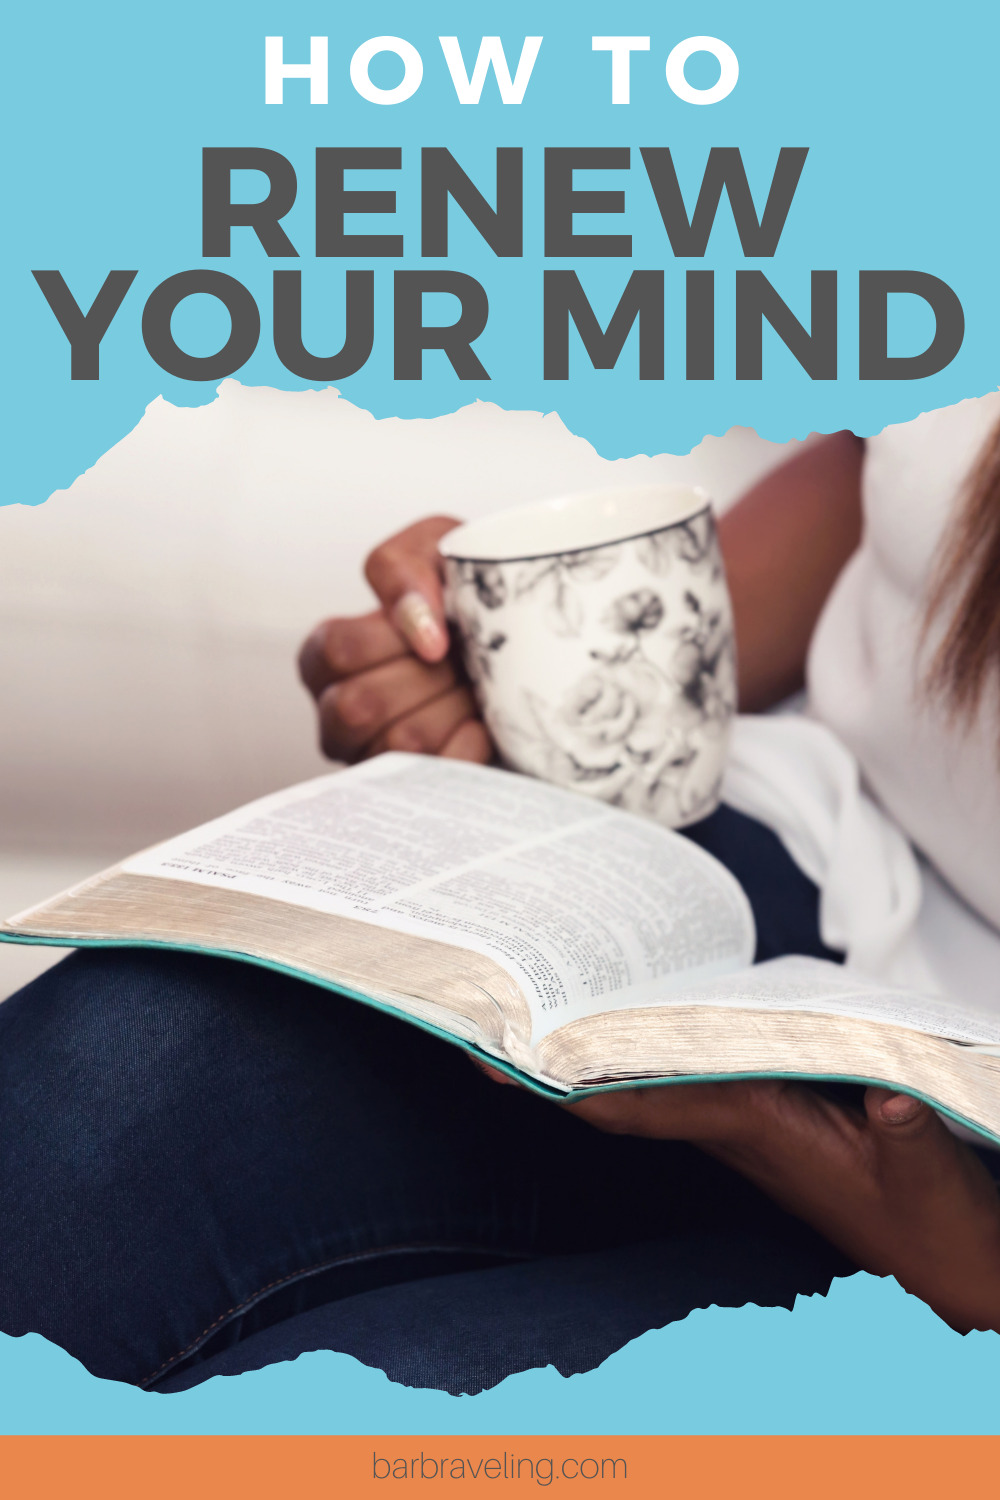 the renewing of the mind workshop